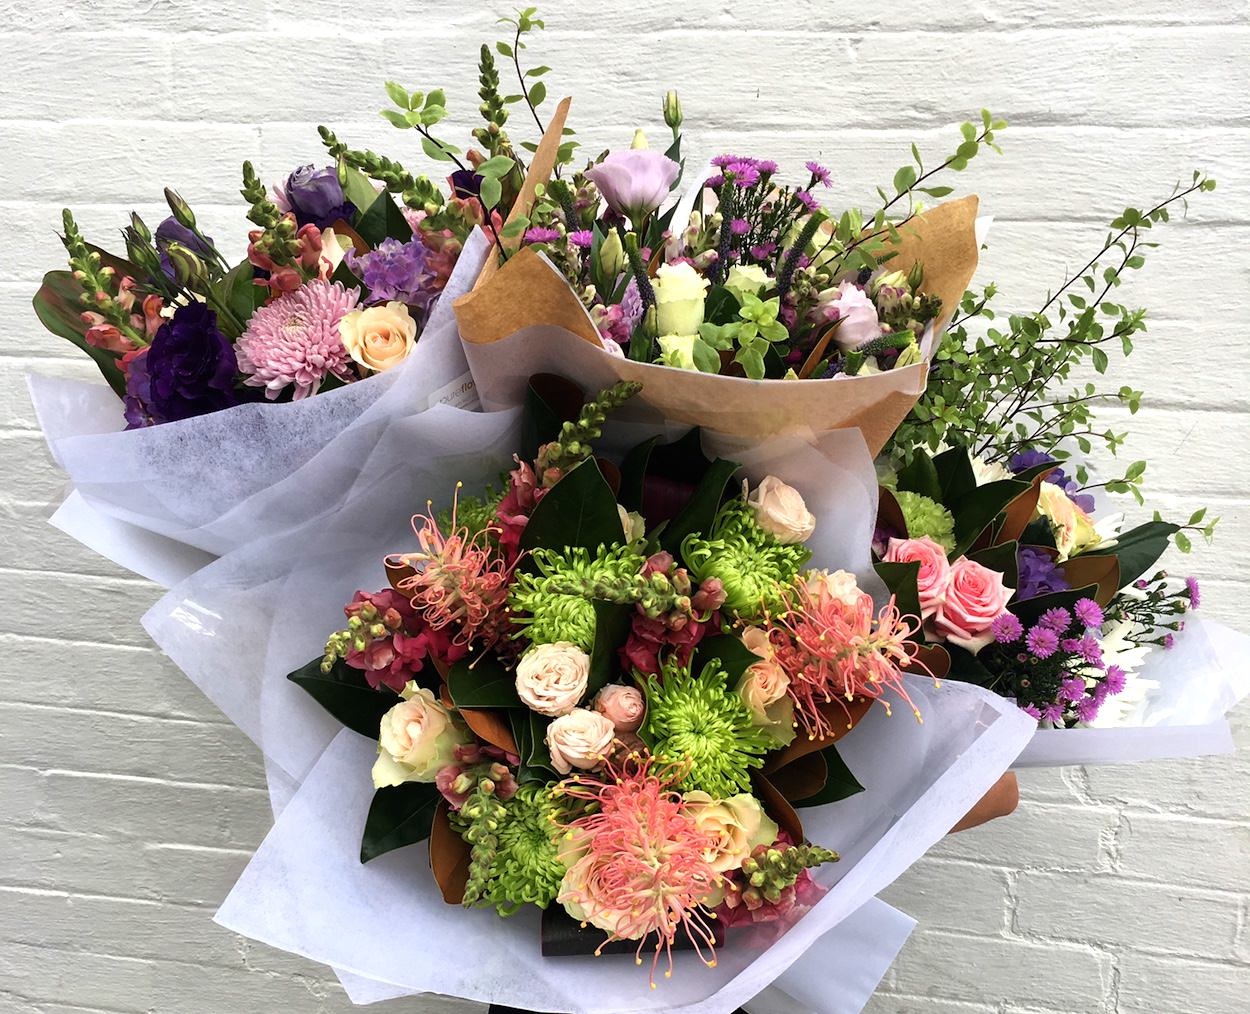 Pure Flowers Florist Lane Cove Sydney Gorgeous Blooms for all occasions